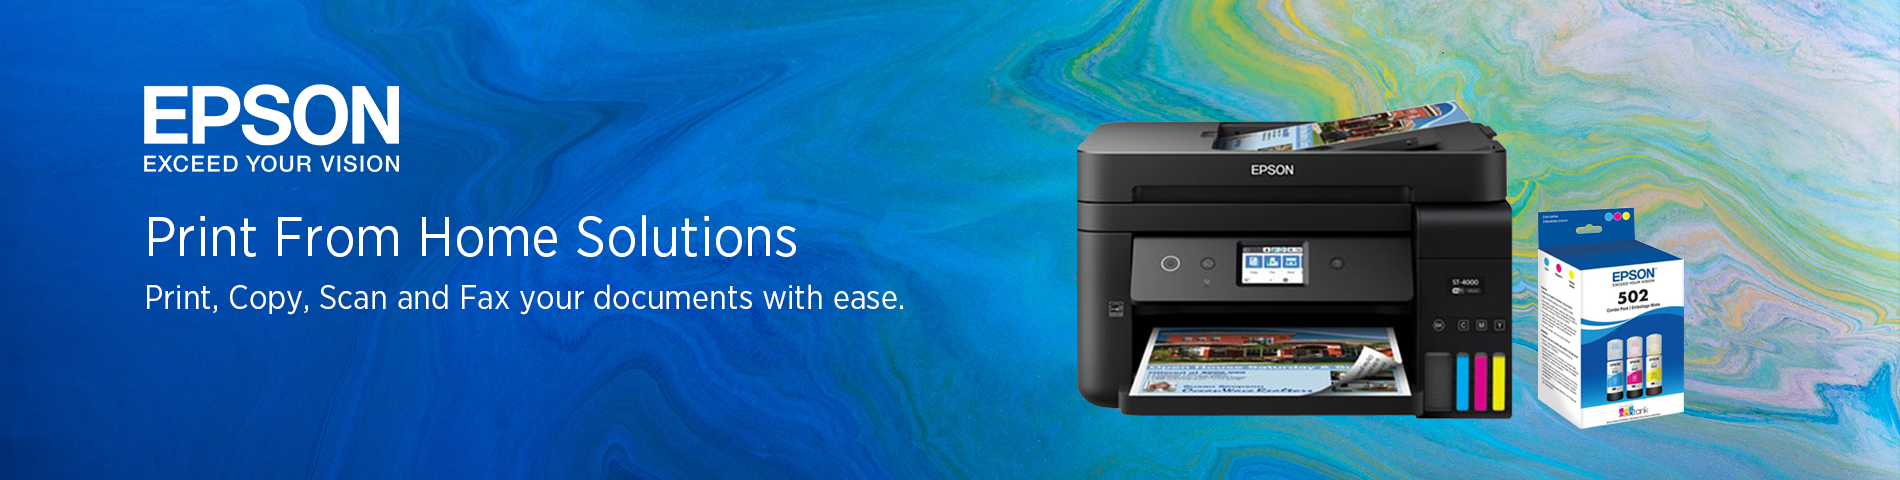 Epson From Home Printing Solutions